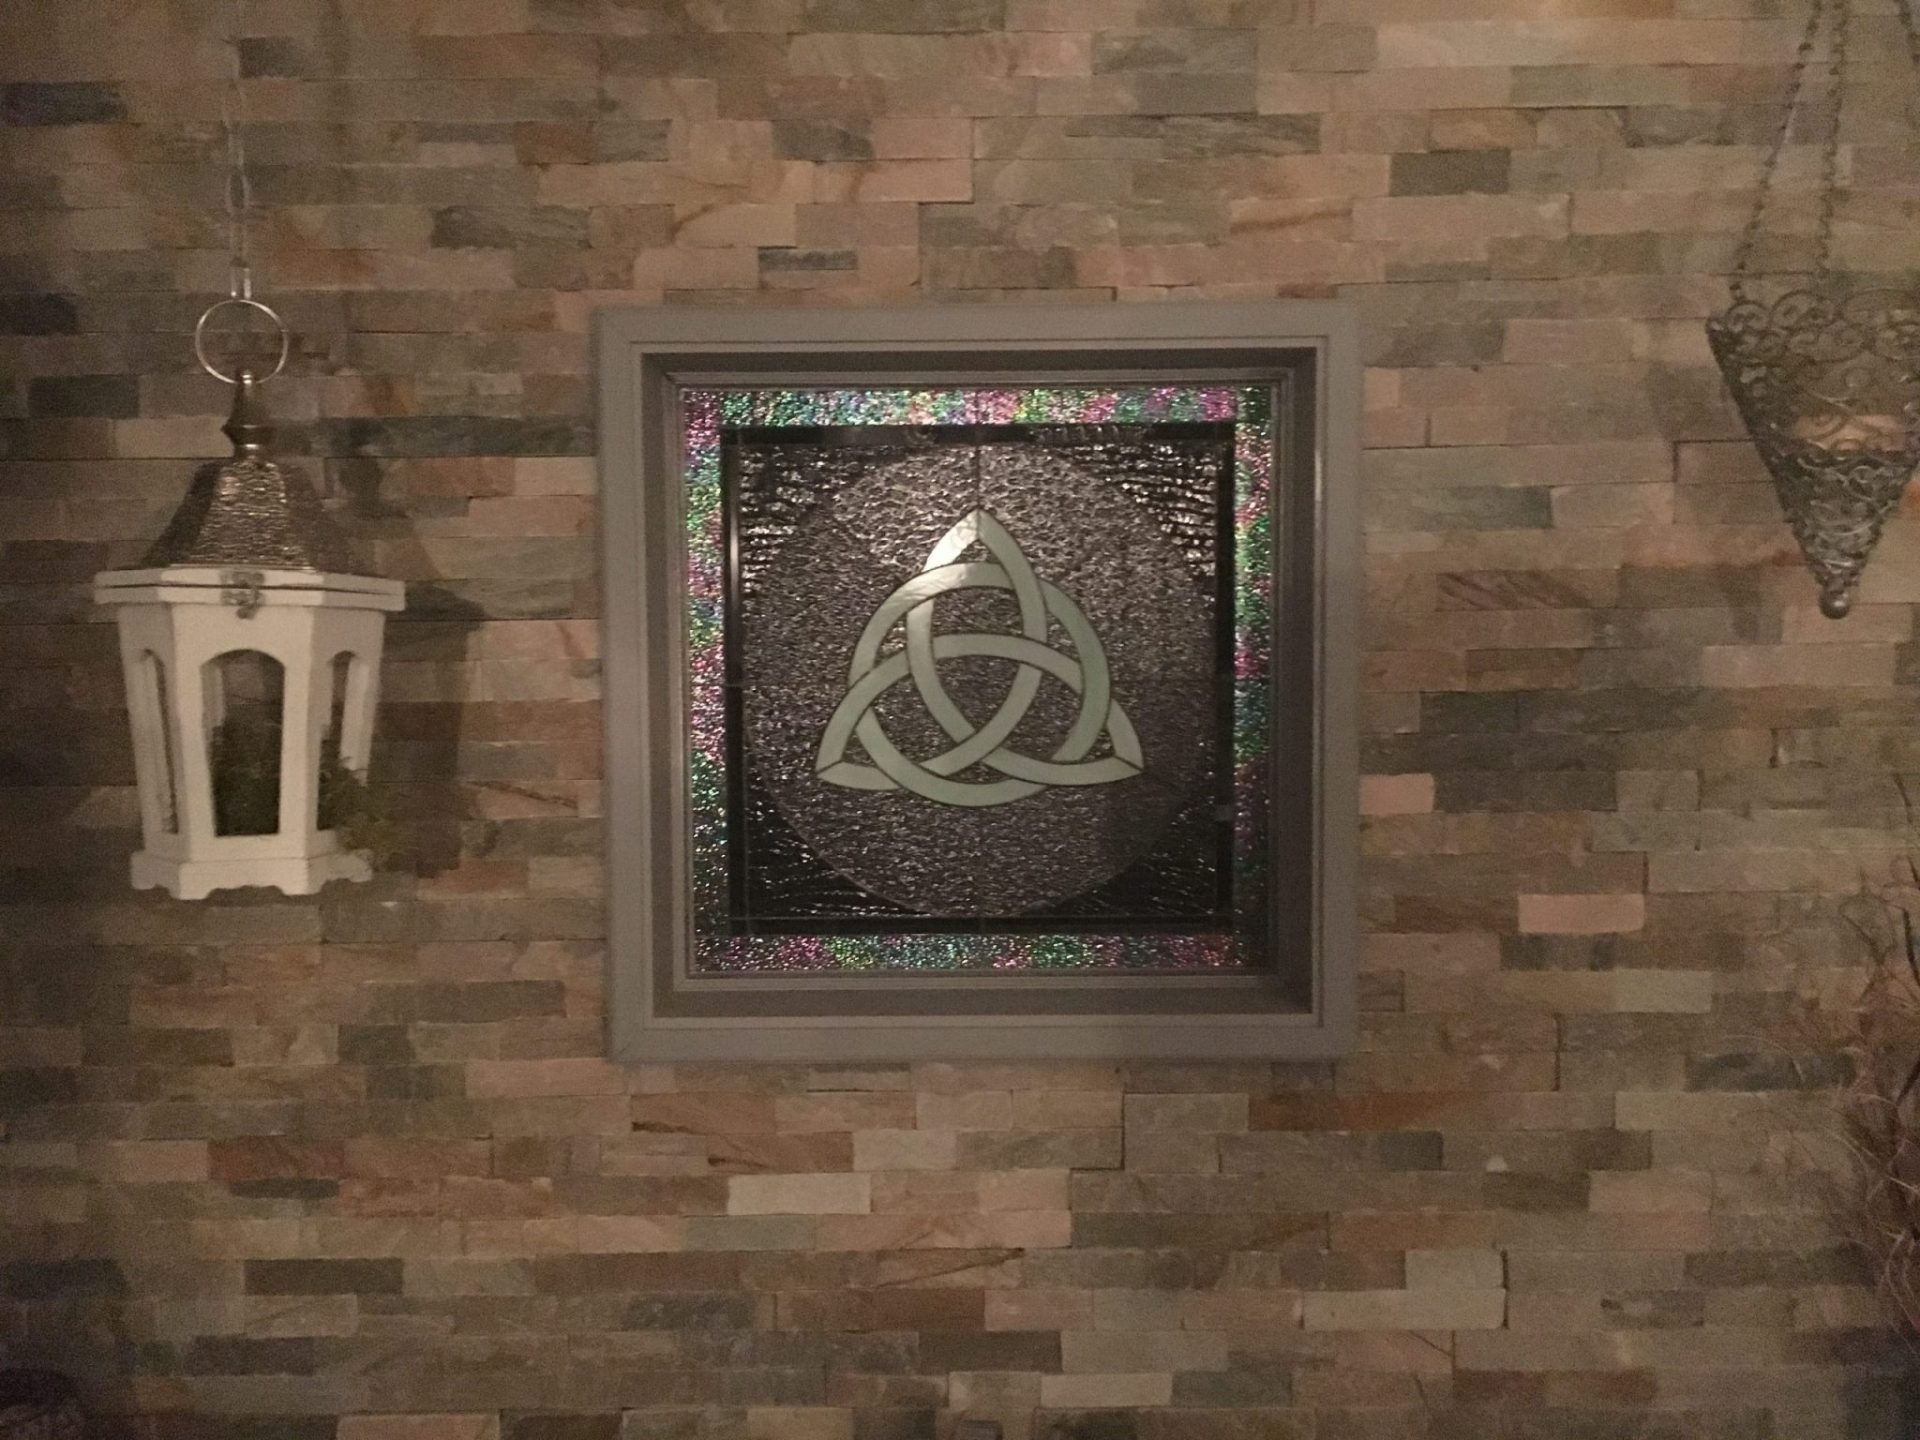 Celtic Knot Stained Glass Window Installed In A Brick Wall For Added Character